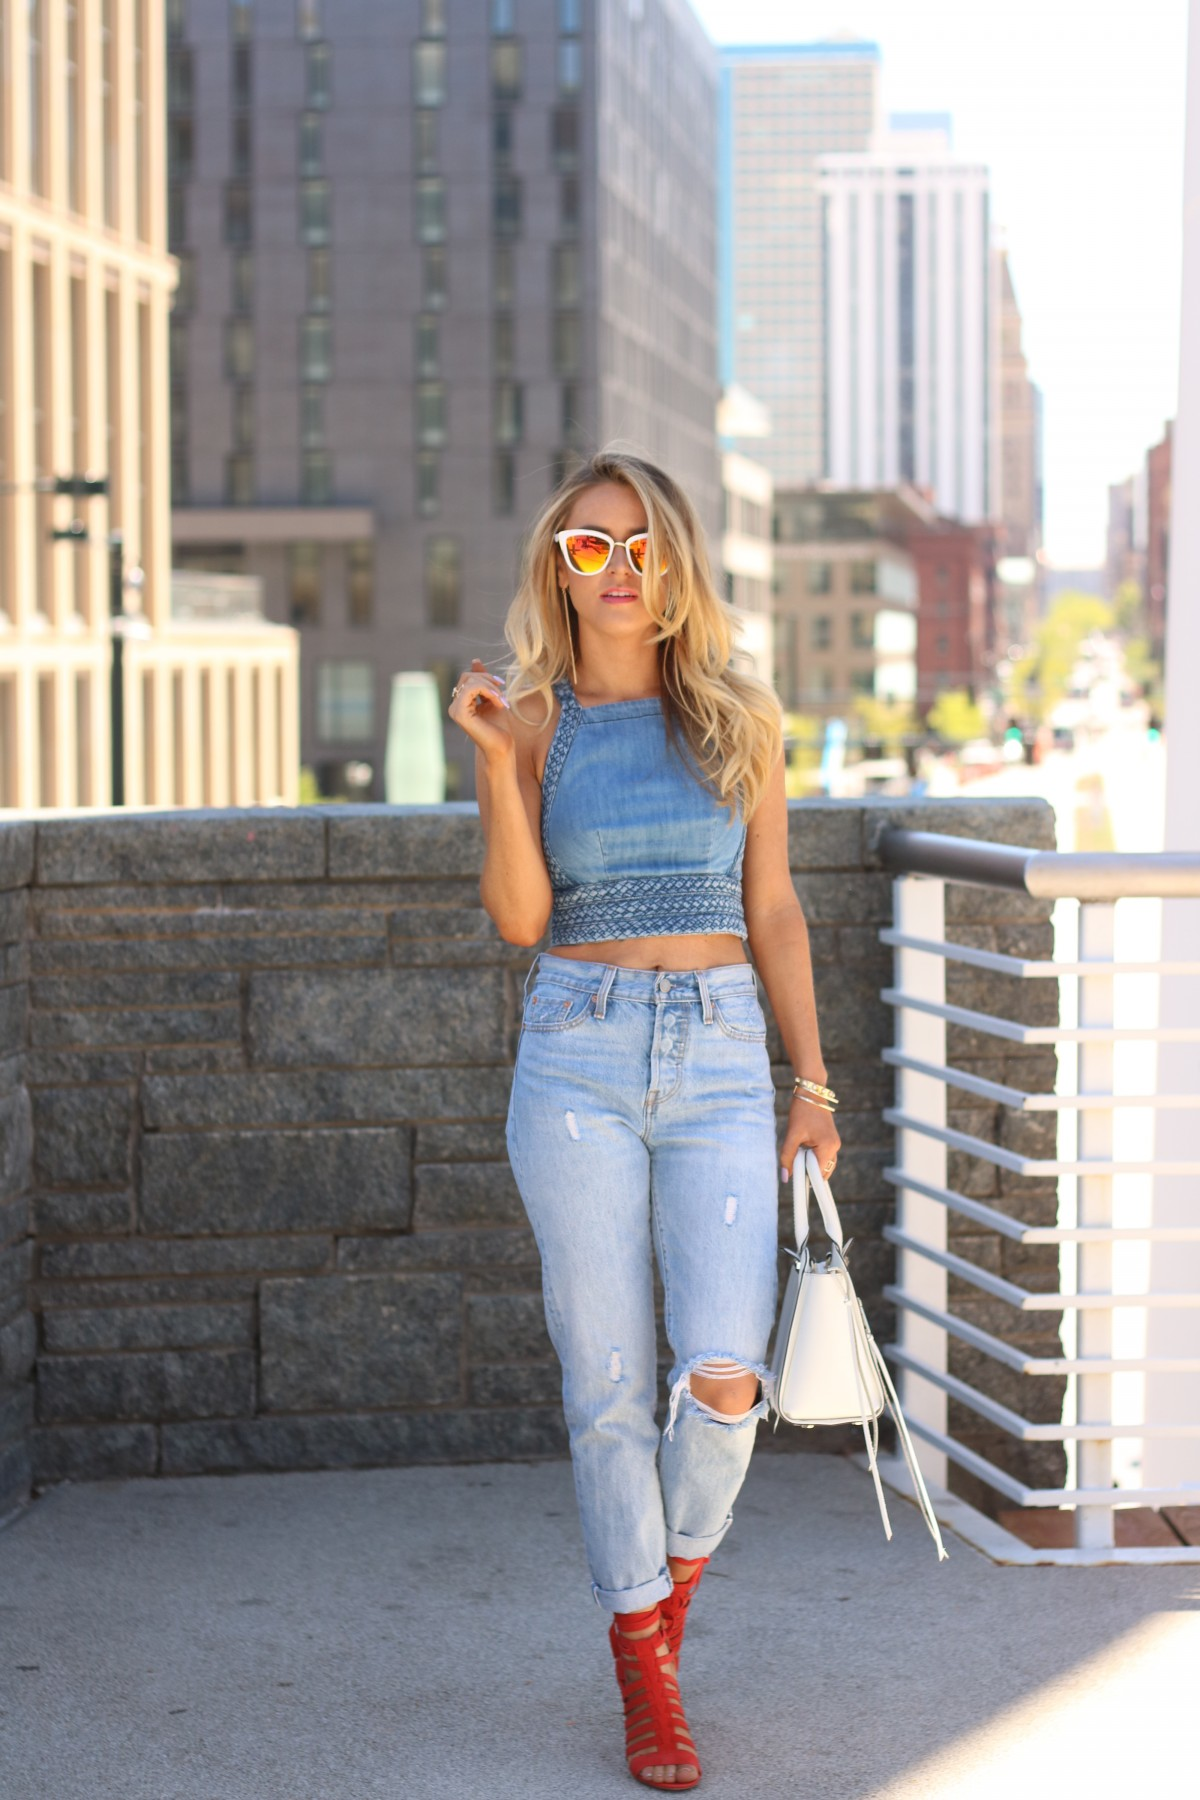 amber from every once in a style wearing   Levi's 501   denim crop top